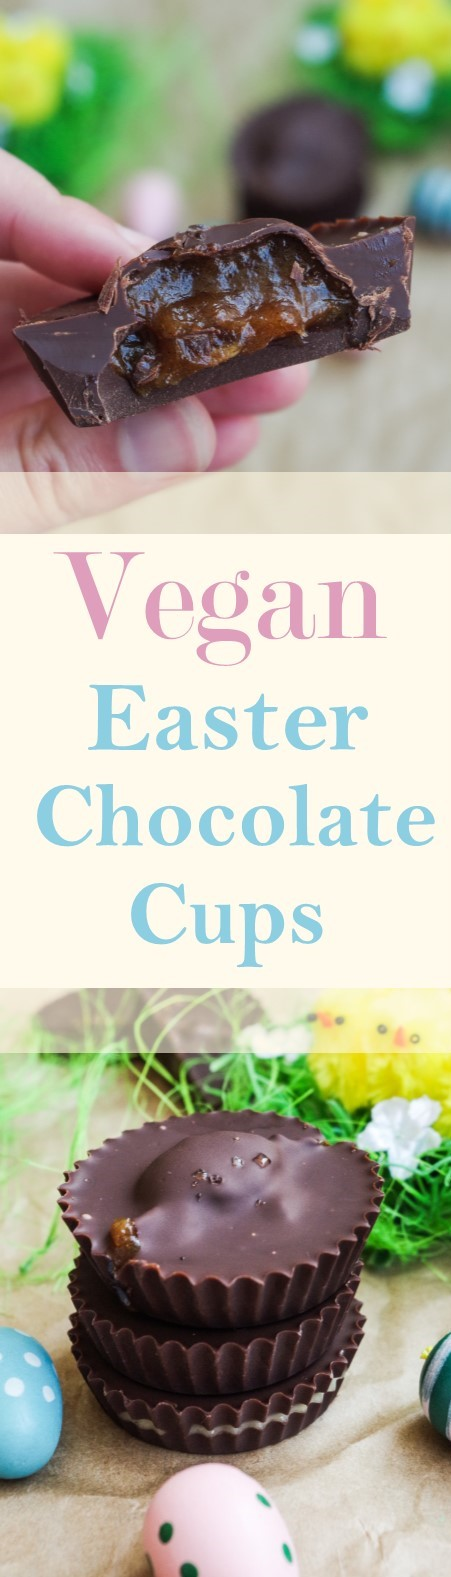 Vegan Easter Chocolate Cups |Euphoric Vegan